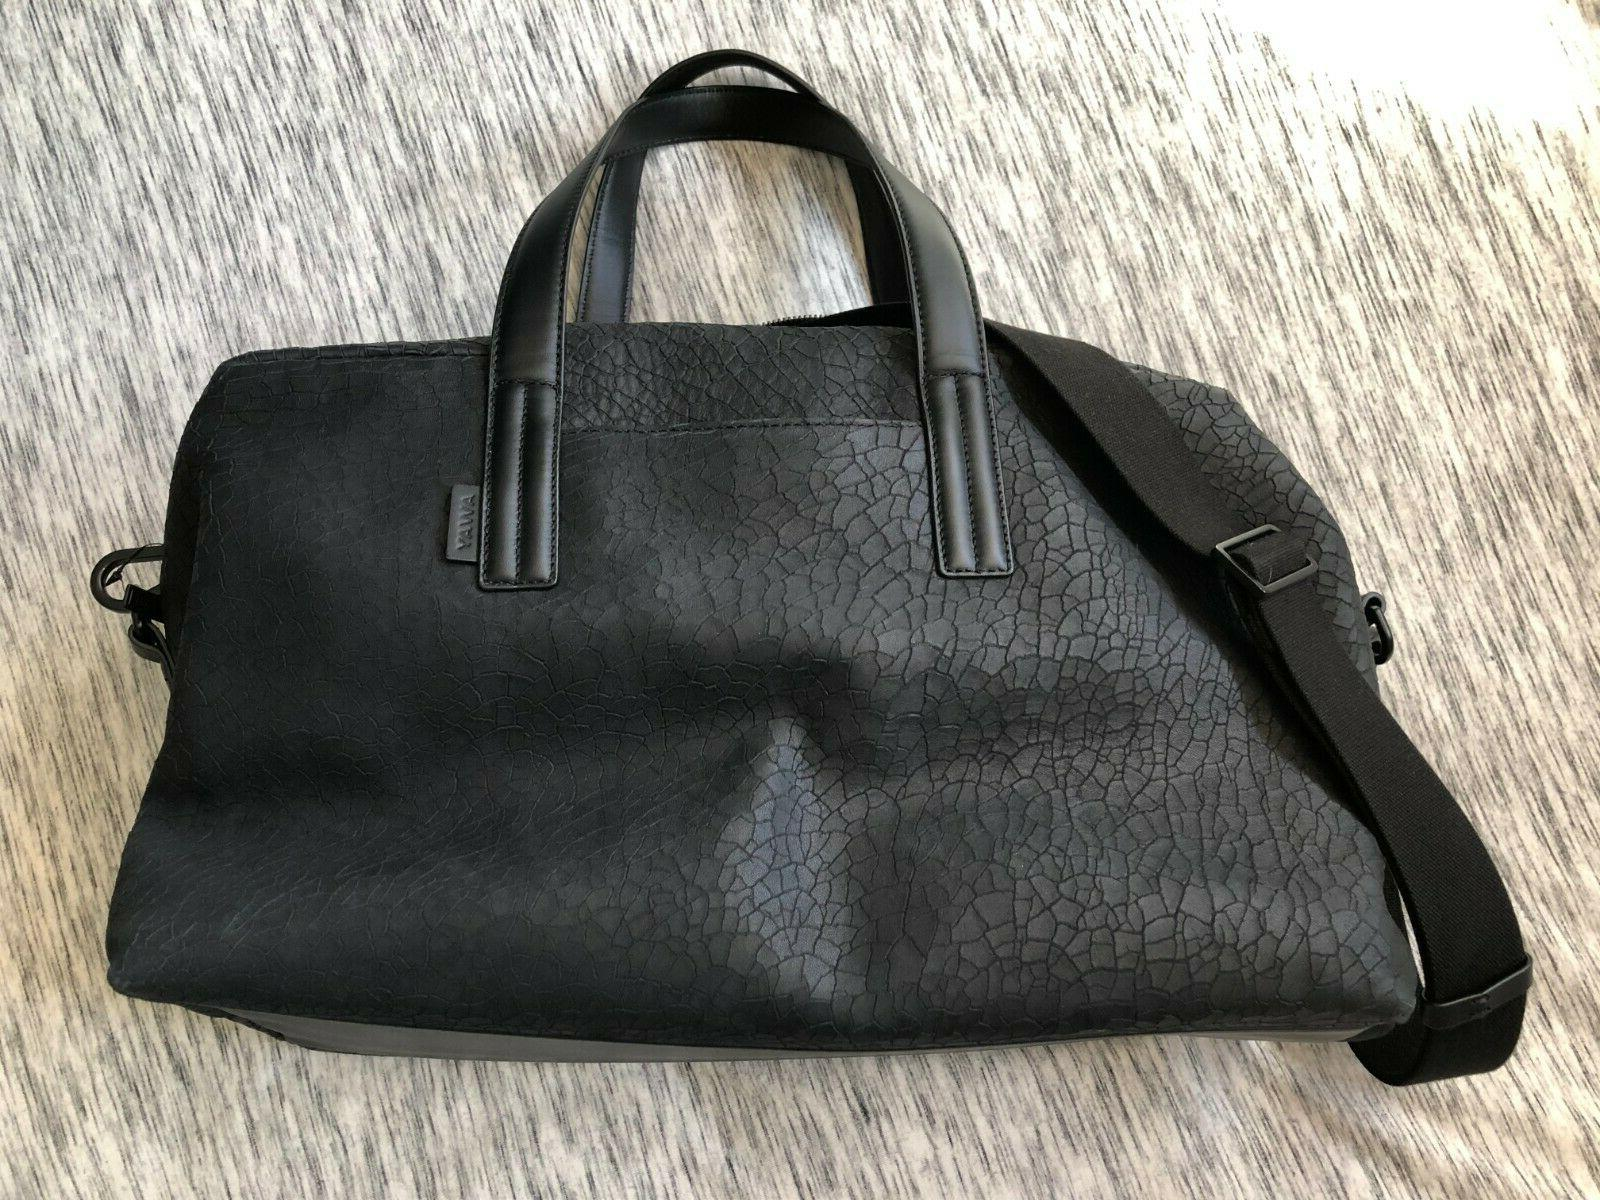 everywhere bag nwot luggage travel carry on